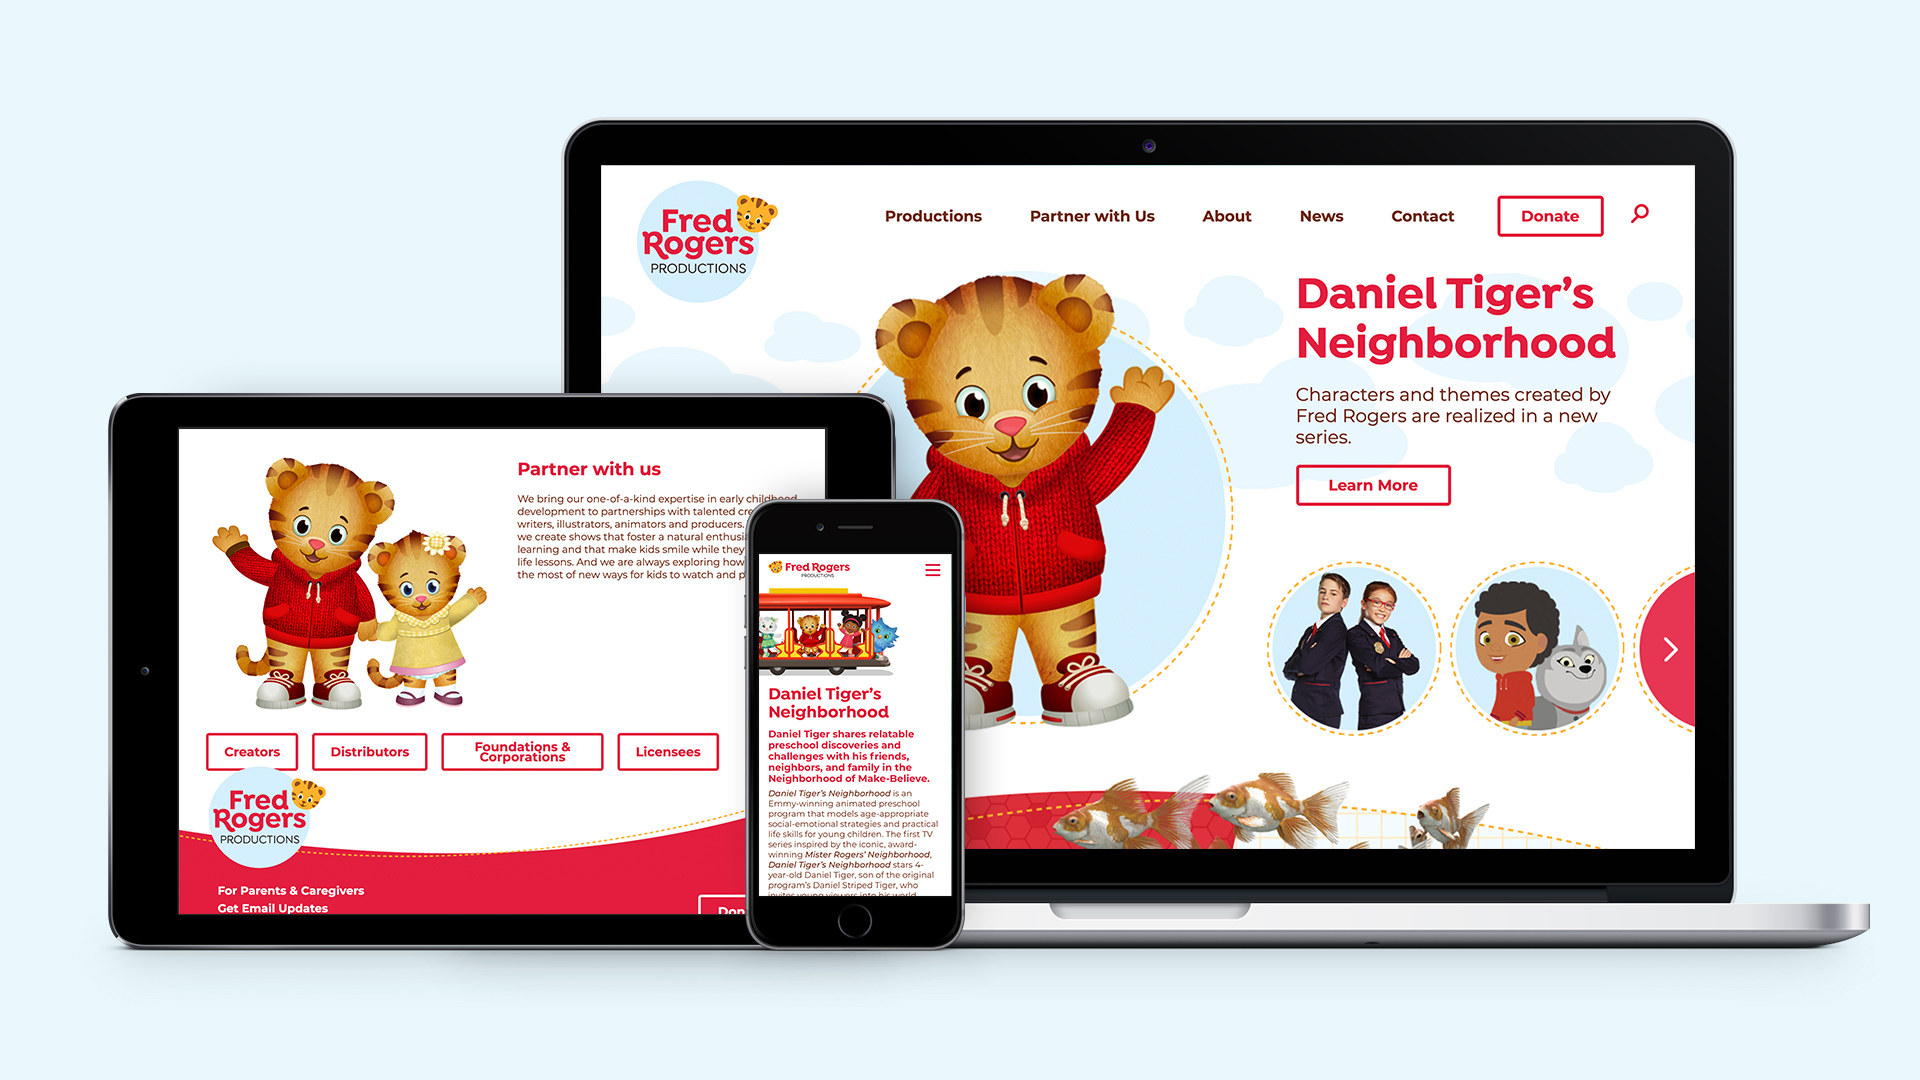 Wall To Wall Studios Designs And Develops Website For Fred Rogers Productions Wall To Wall Studios